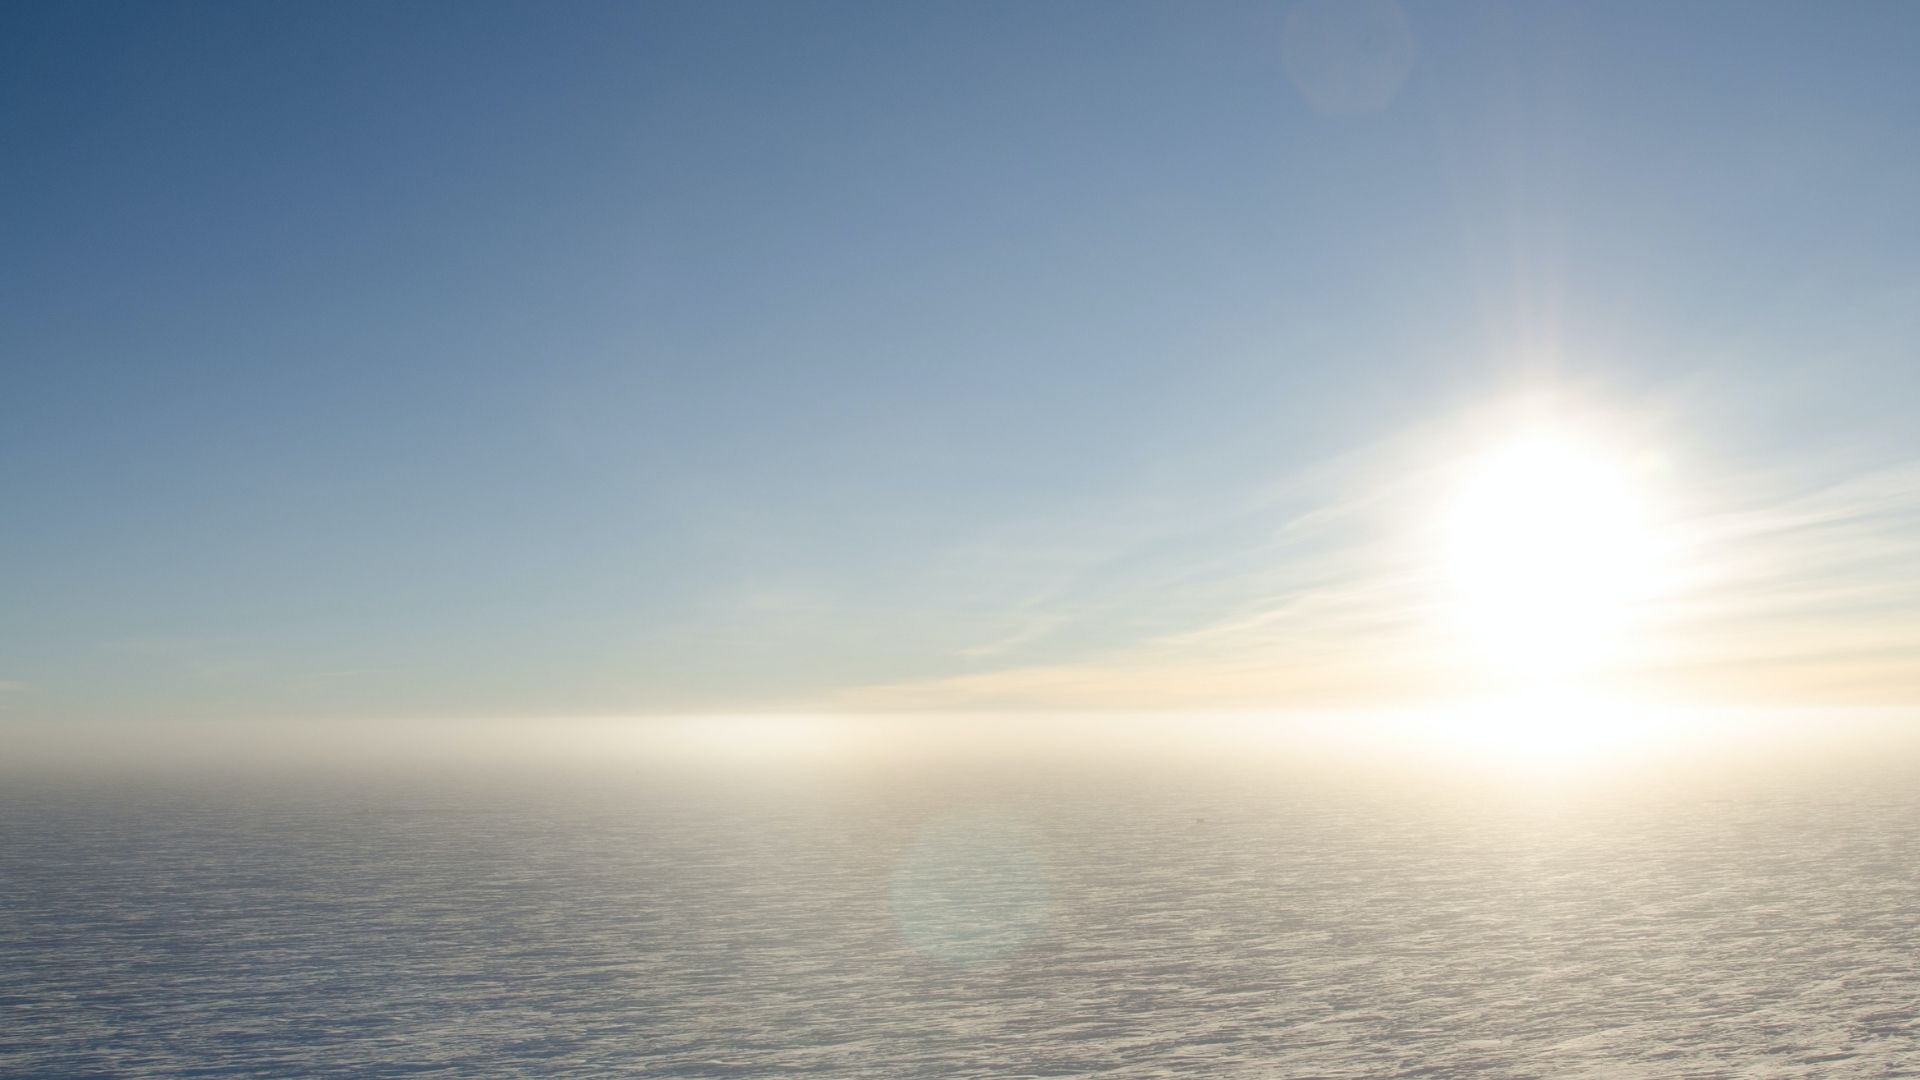 The Pole of Inaccessibility of Antarctica- the endless emptyness